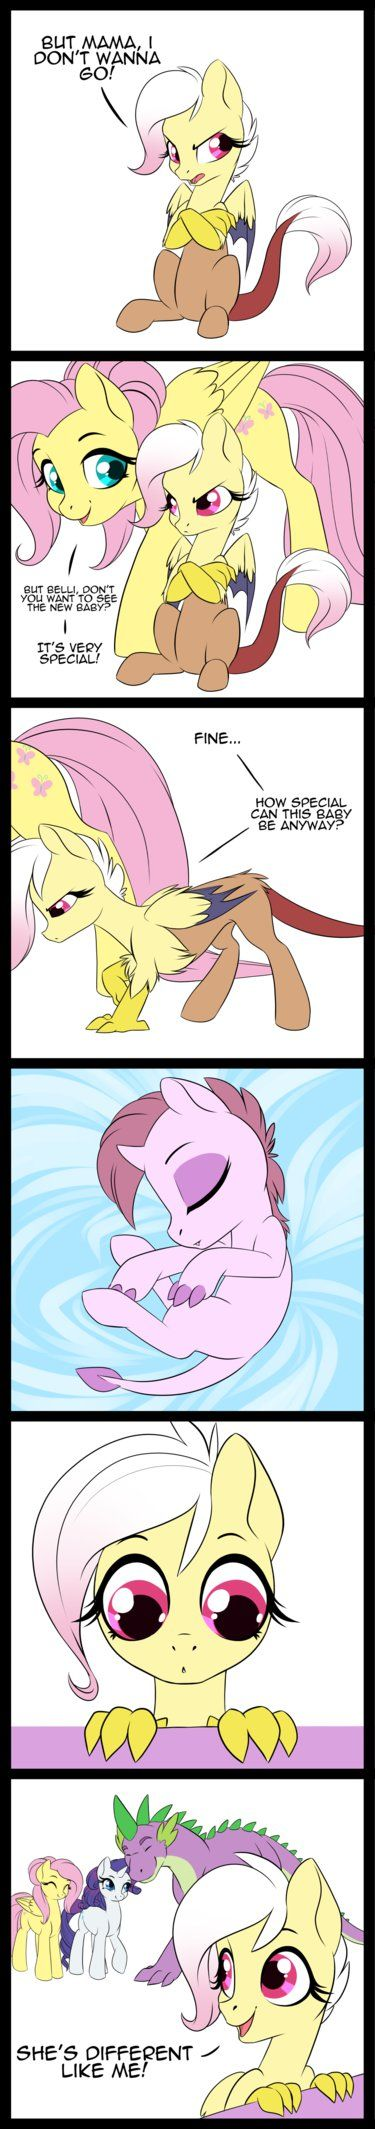 This is cute even though I don't ship Flutter and Discord or Rarity and Spike. TBH I'm only pinning for character design and art style.